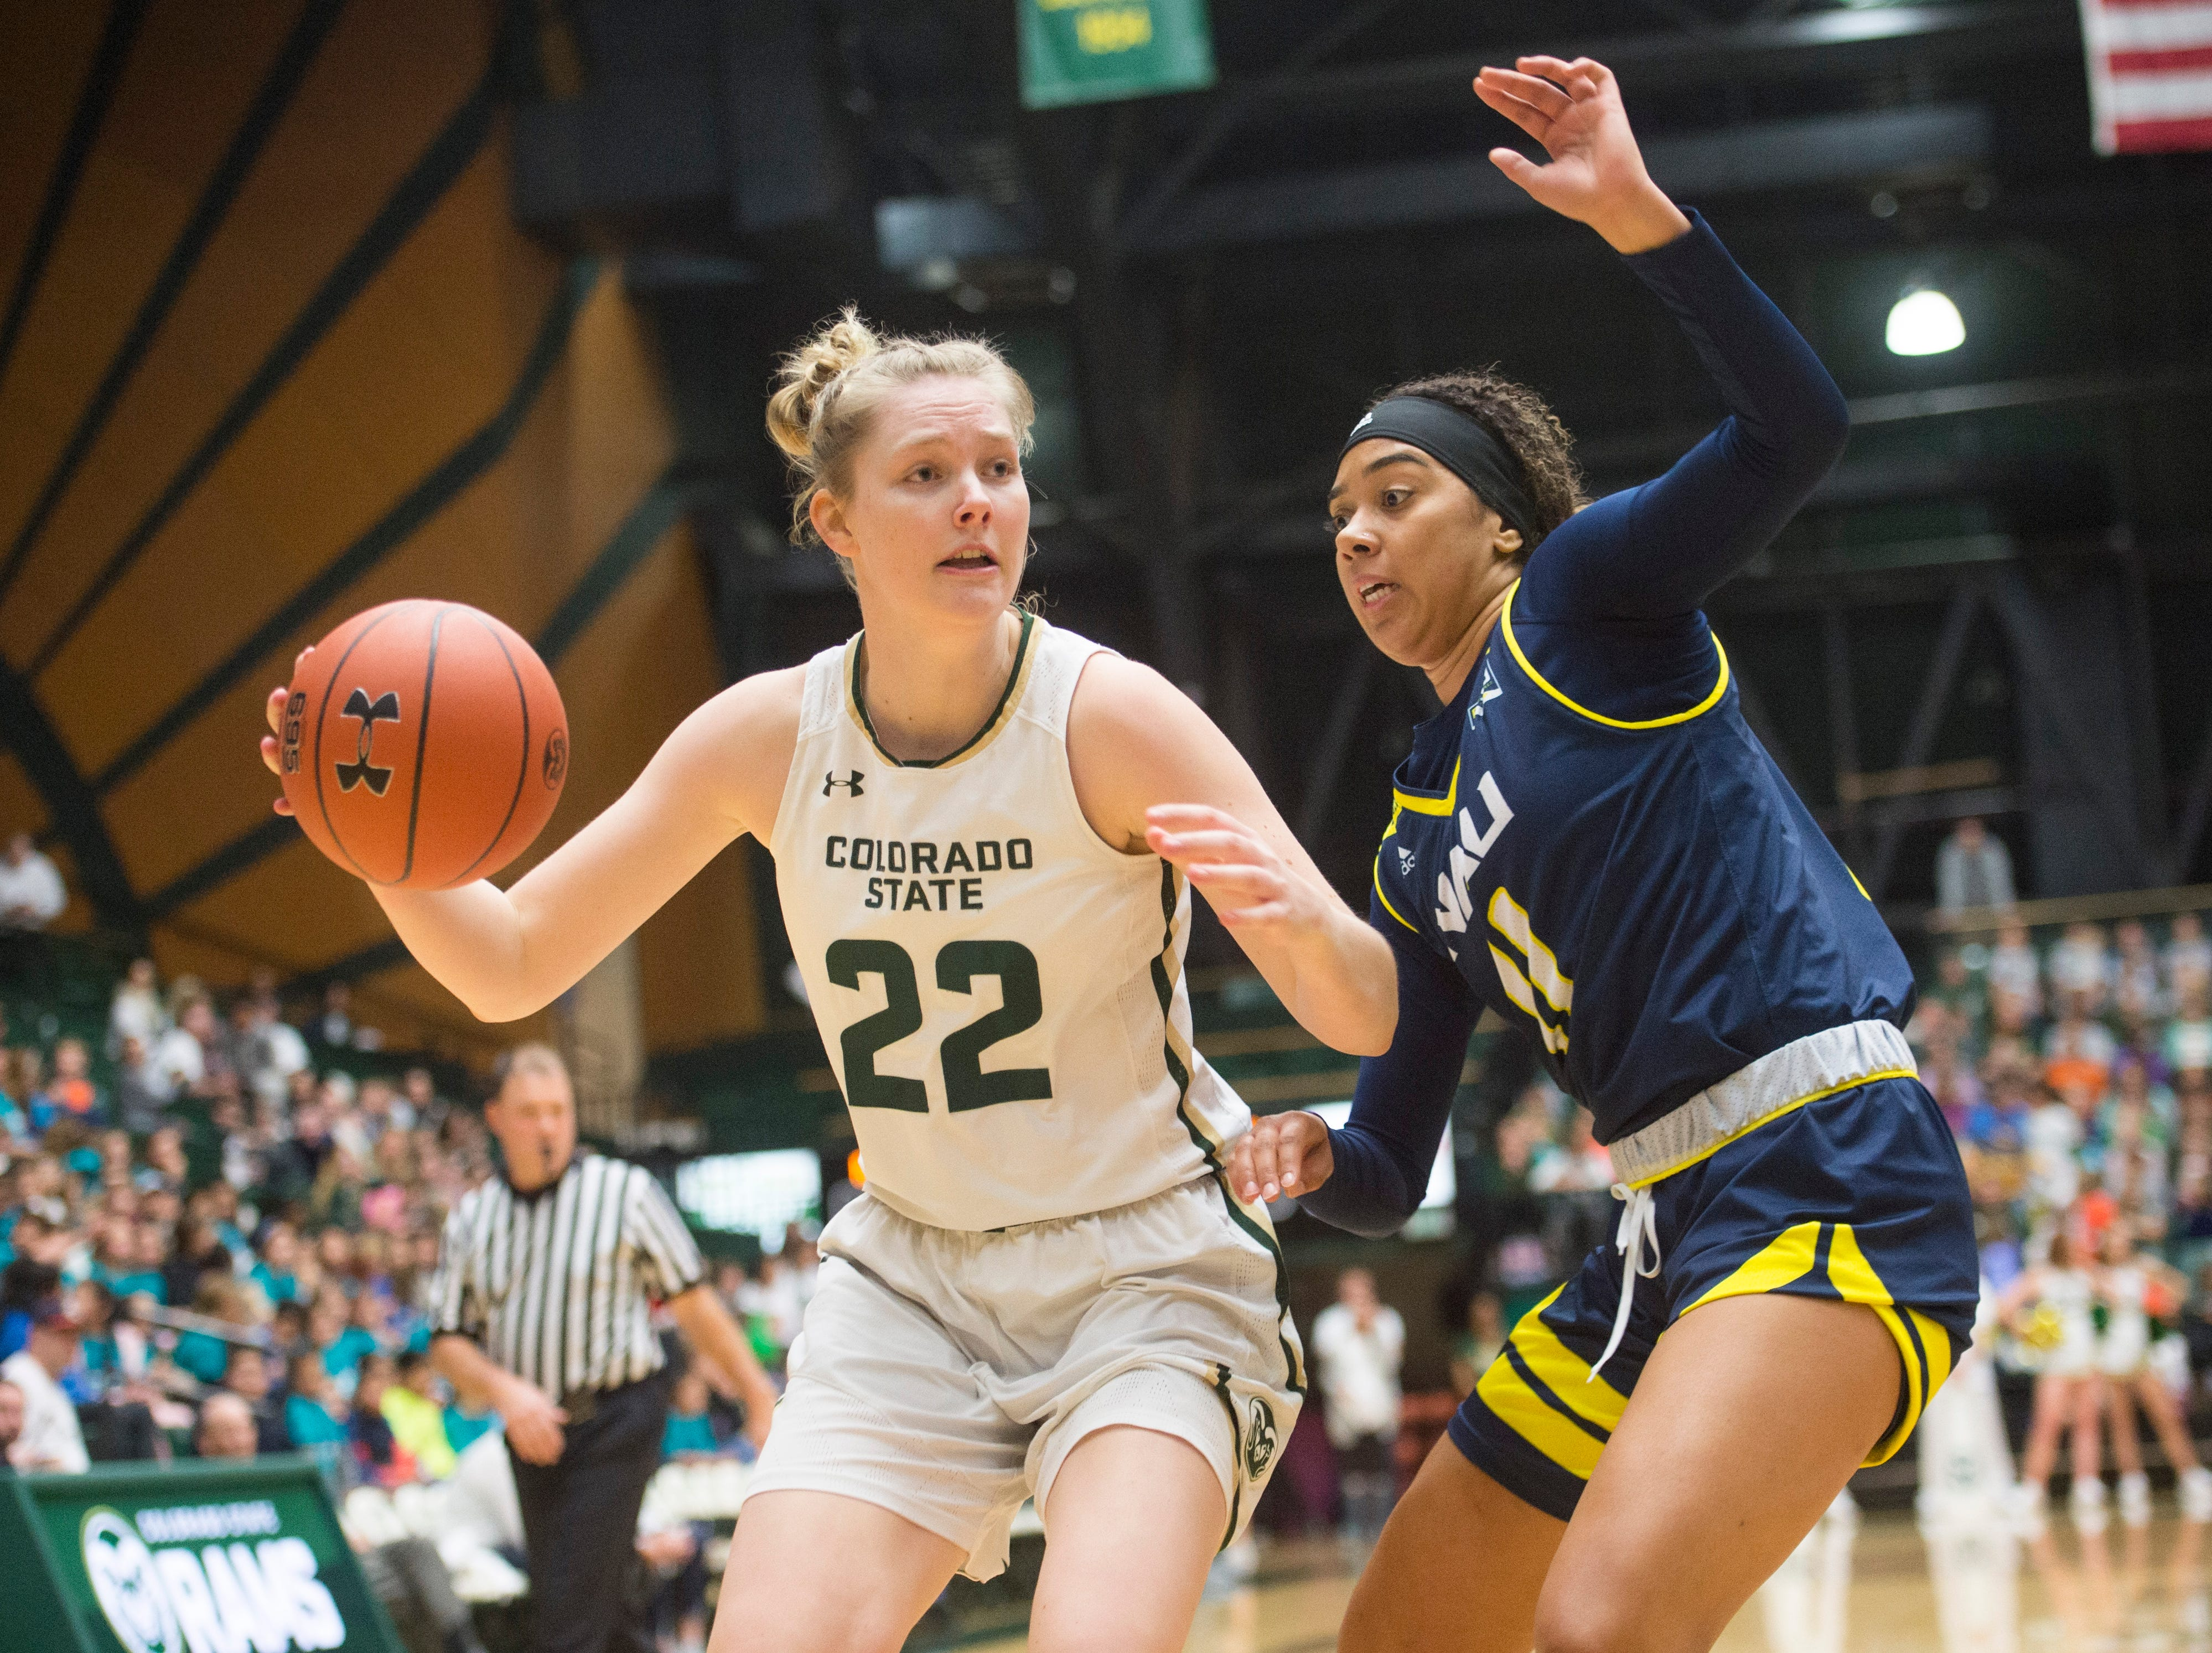 CSU's Lauren Brocke tries to get around Lumberjacks defense during a game against Northern Arizona at Moby Arena on Wednesday, December 5, 2018.